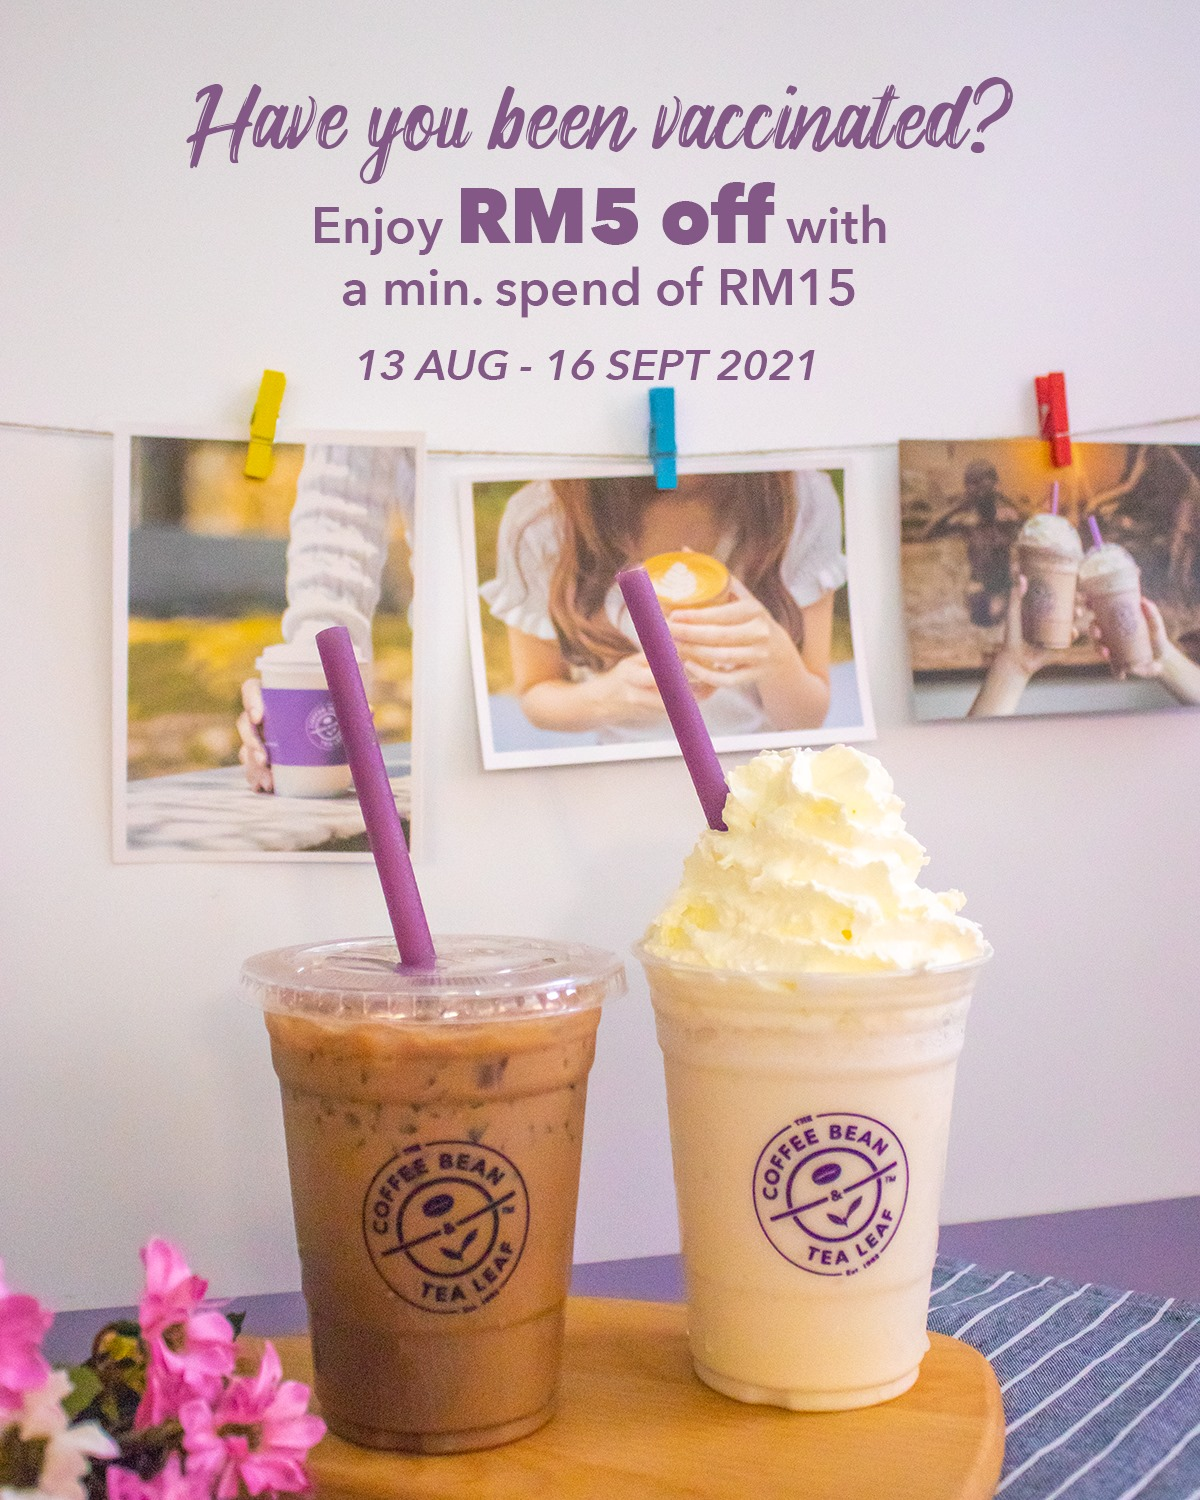 Got Your Jab? Get Your Discount from The Coffee Bean & Tea Leaf!